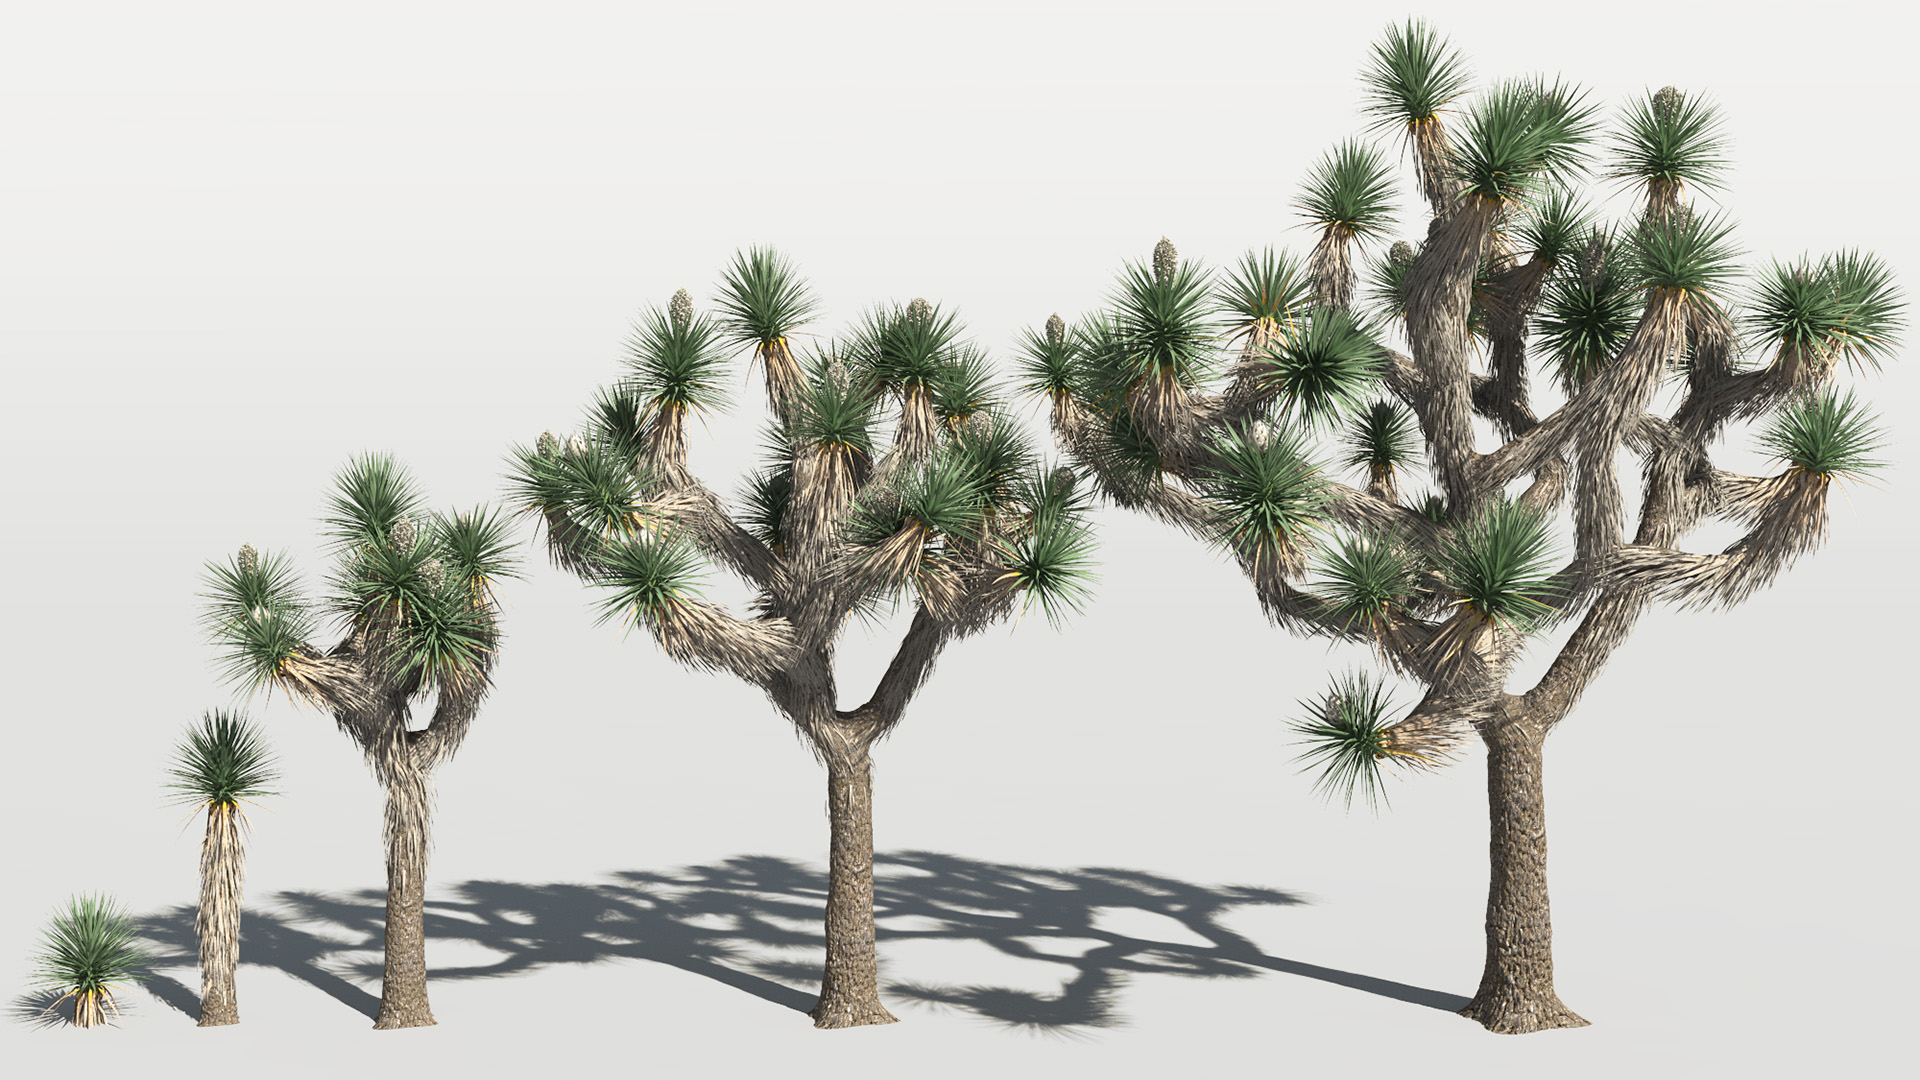 3D model of the Joshua tree Yucca brevifolia maturity variations